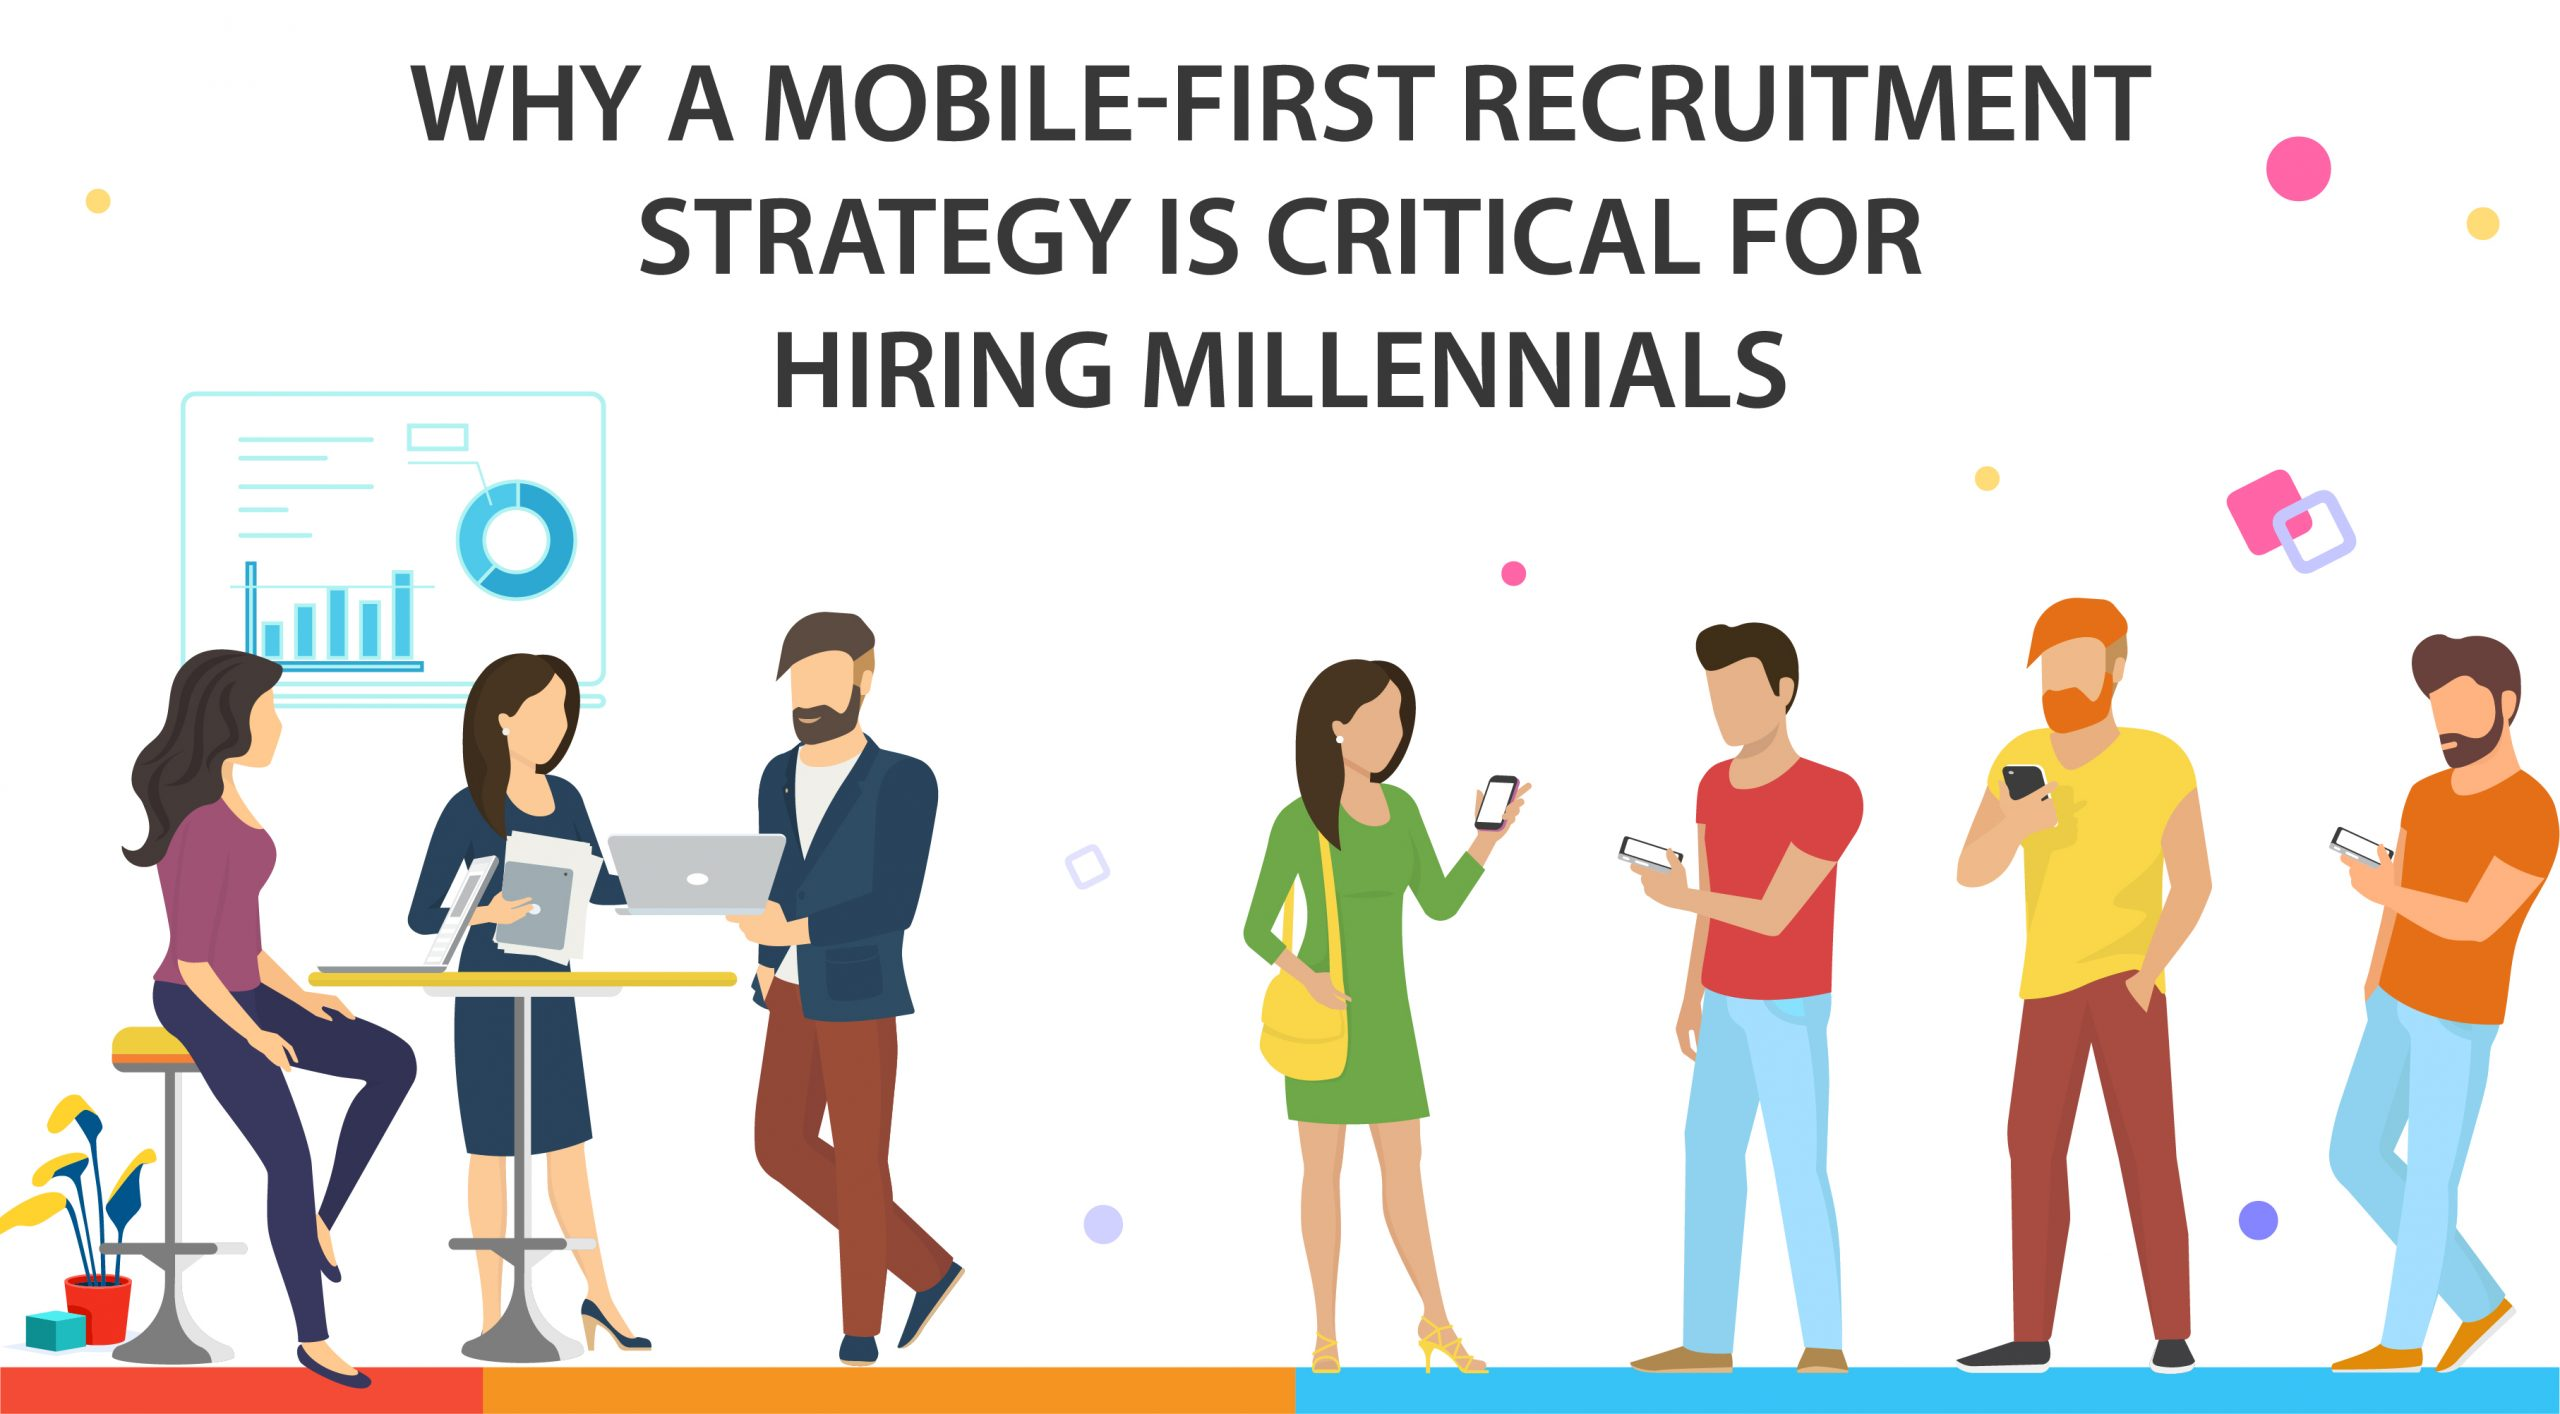 mobile-first recruitment